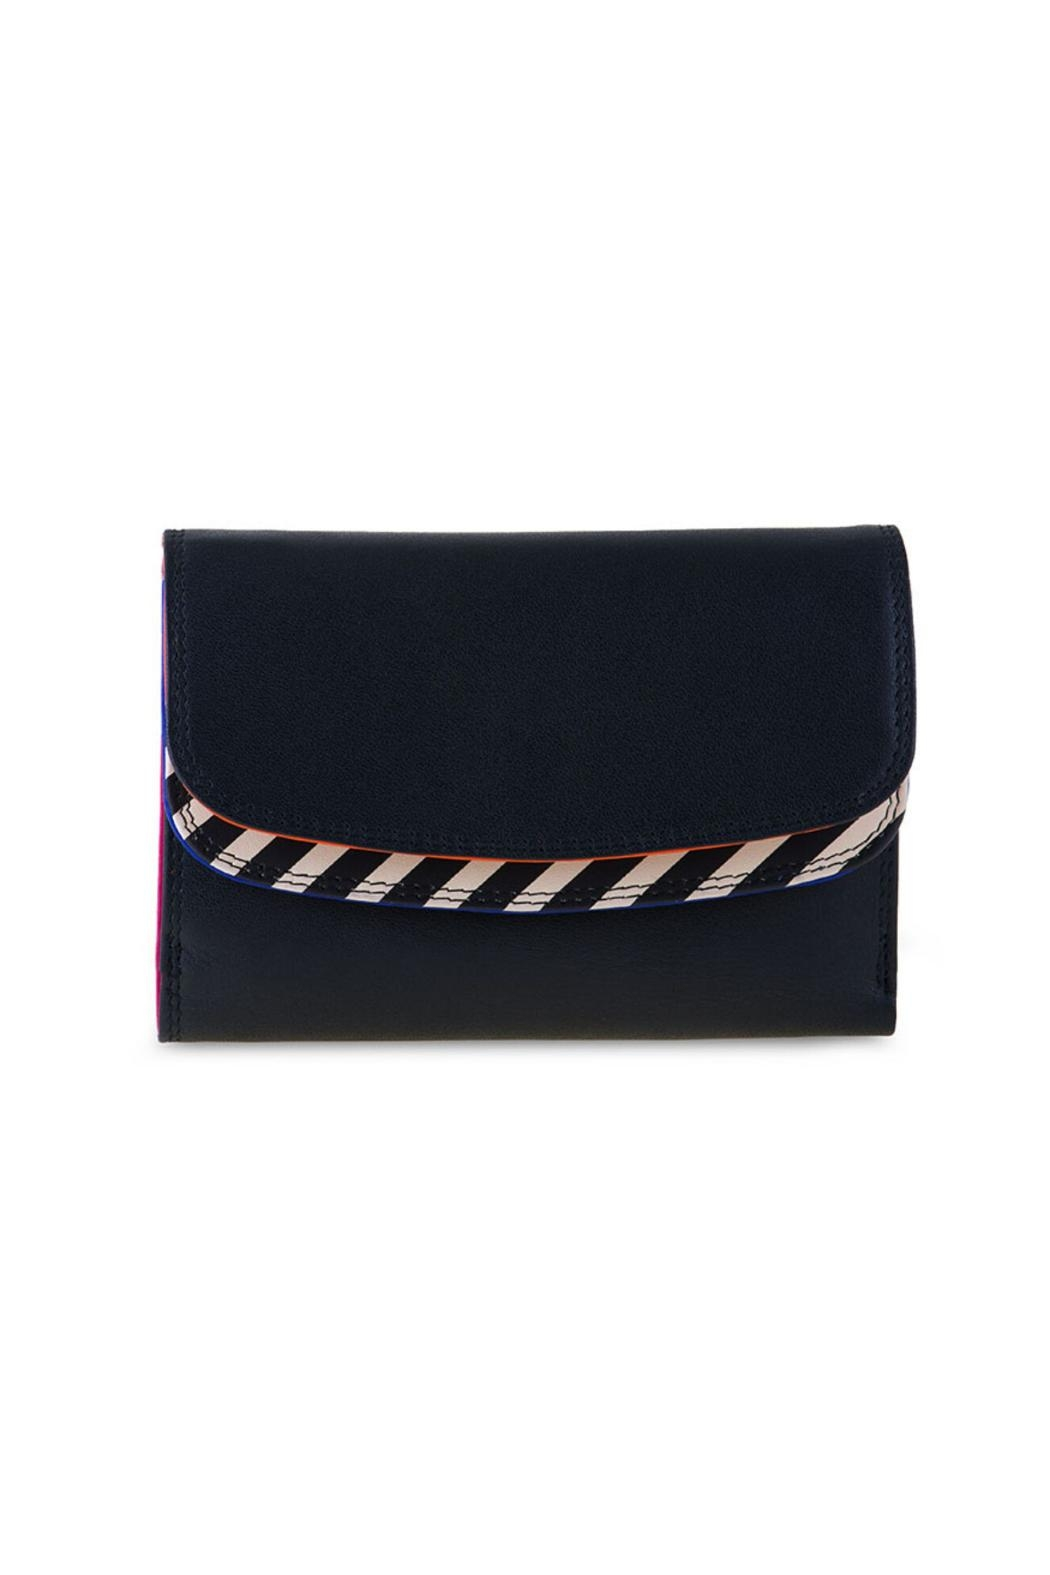 mywalit Tri-Fold Double Flap Wallet - Main Image